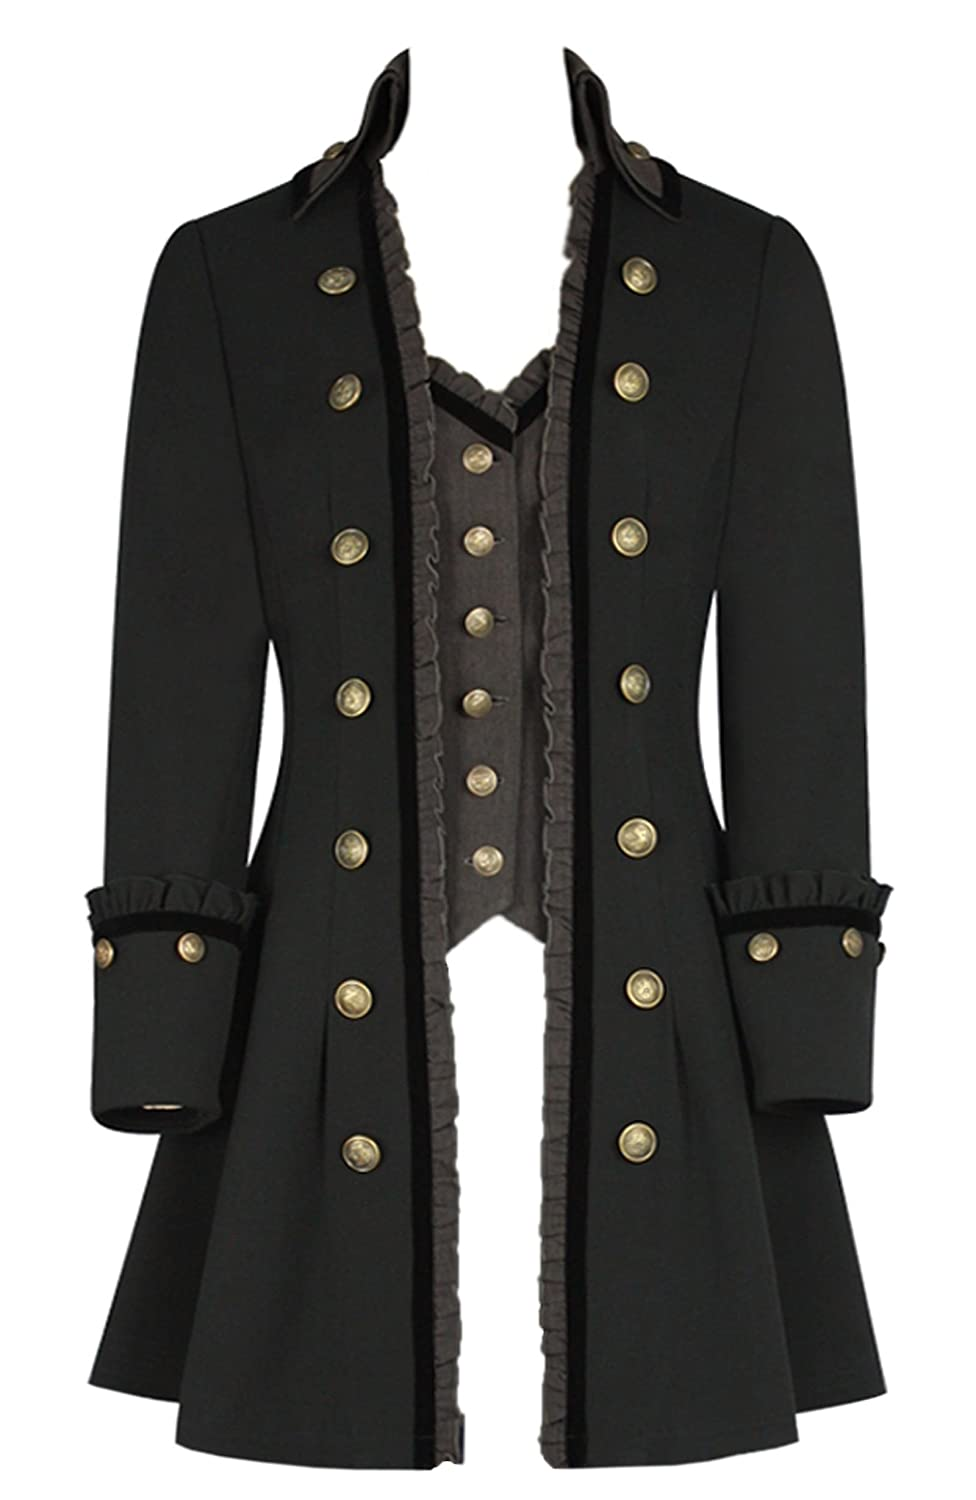 Women's Pirate Cavalier Military Highwayman High Collar Gray & Black Coat with Attached Gray Waistcoat - DeluxeAdultCostumes.com